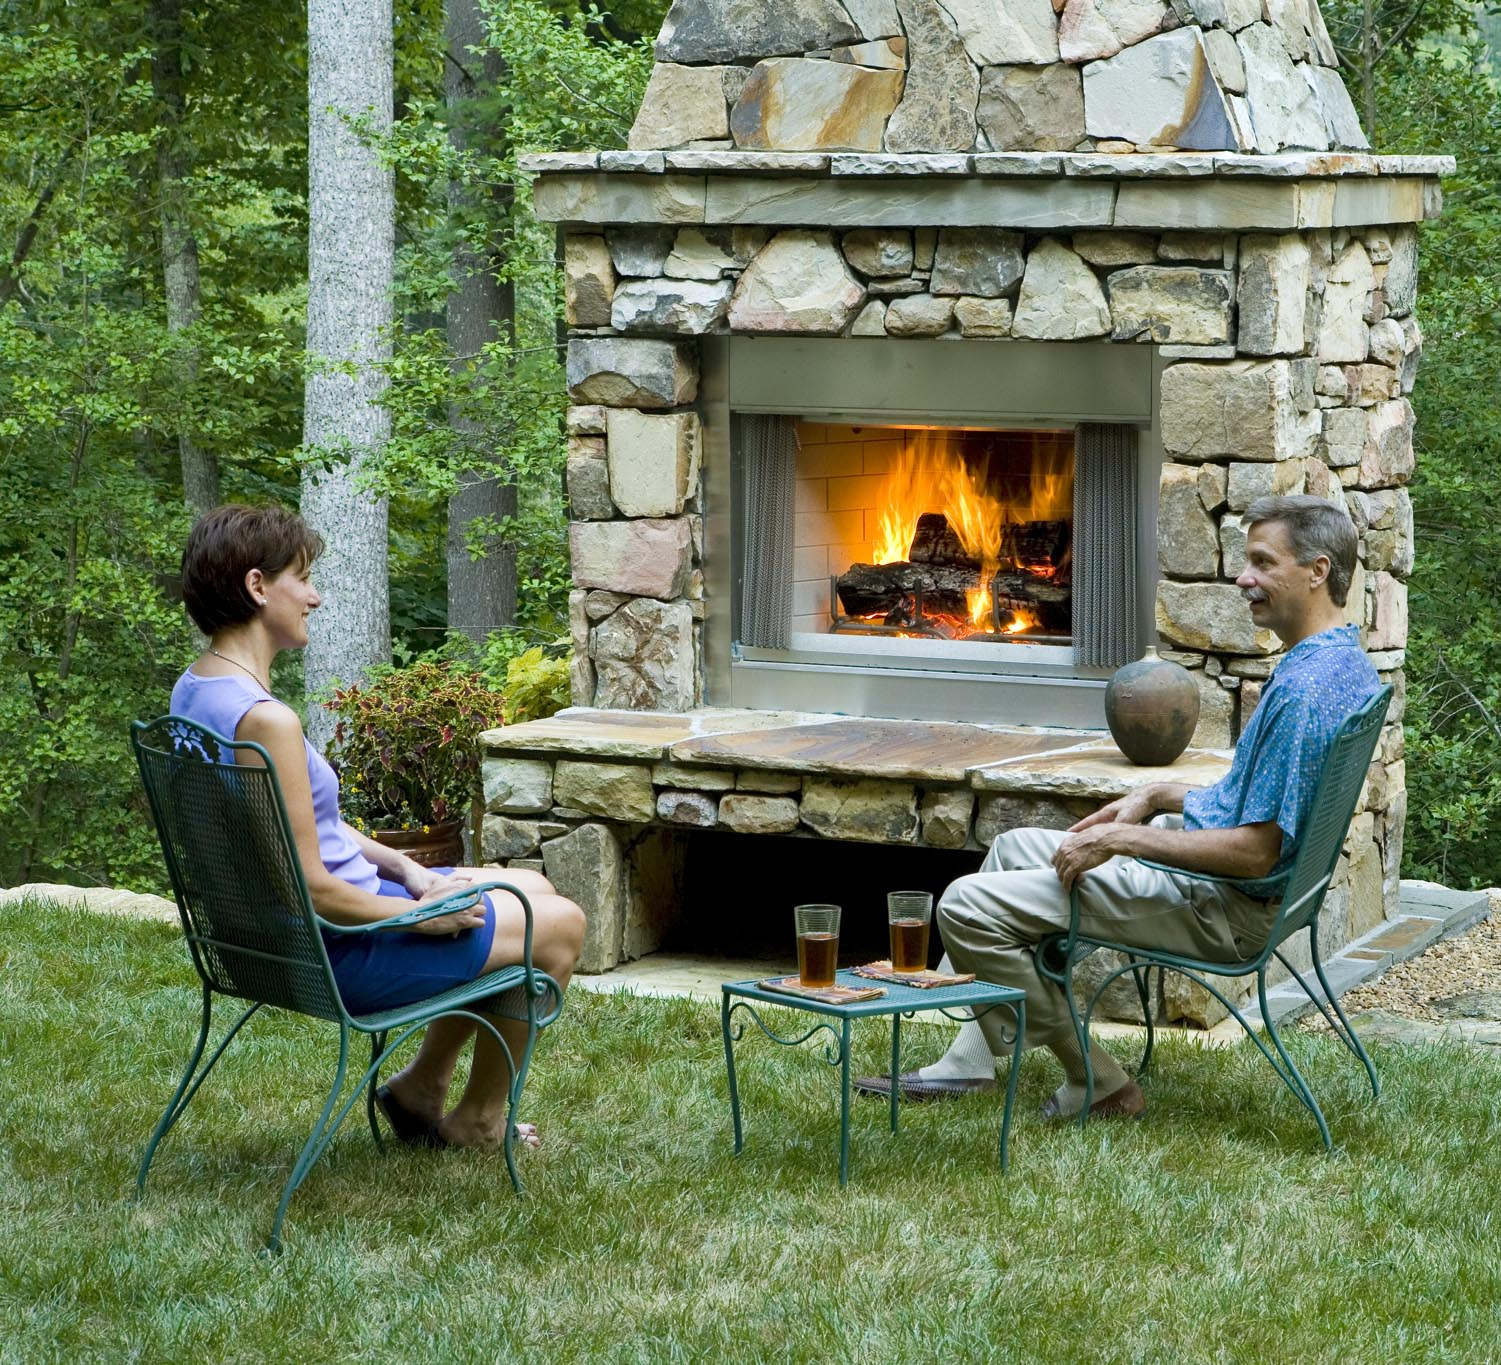 Backyard Fireplace Pictures : 30 Perfect Outdoor Fireplace Pictures  CreativeFan